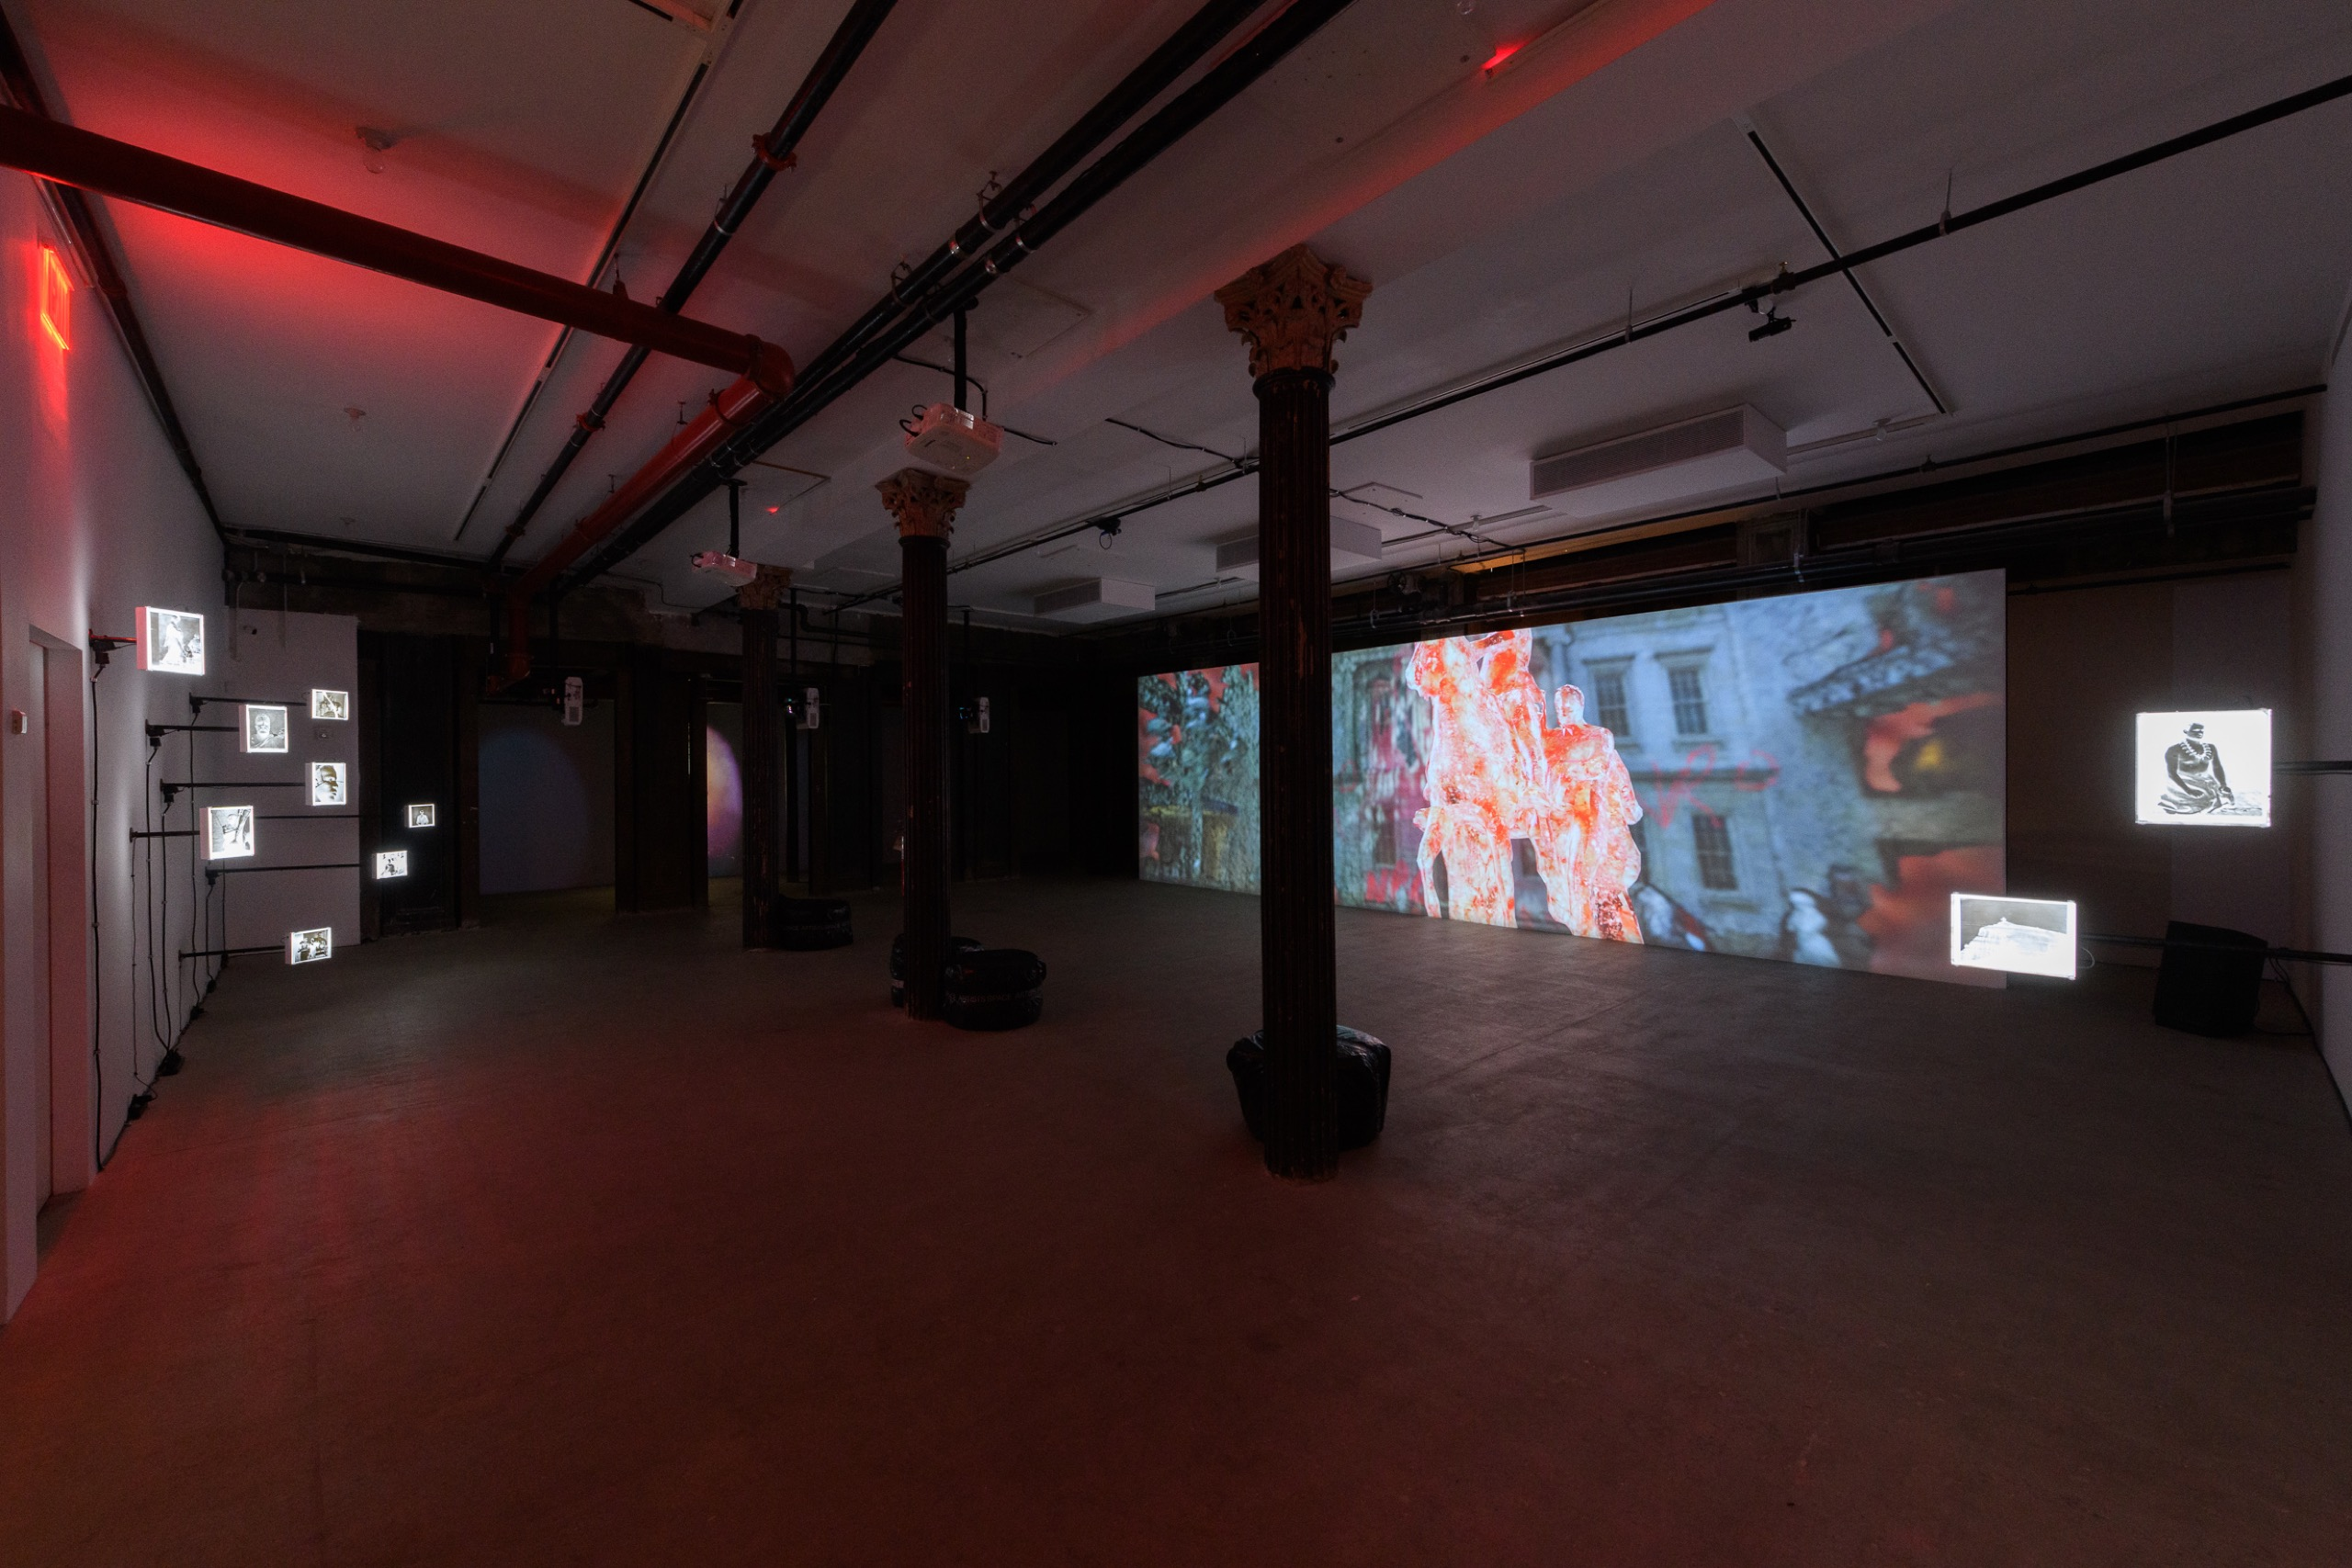 New Red Order: Feel at Home Here. Installation view, Artists Space, 2021. Courtesy Artists Space, New York. Photos: Filip Wolak